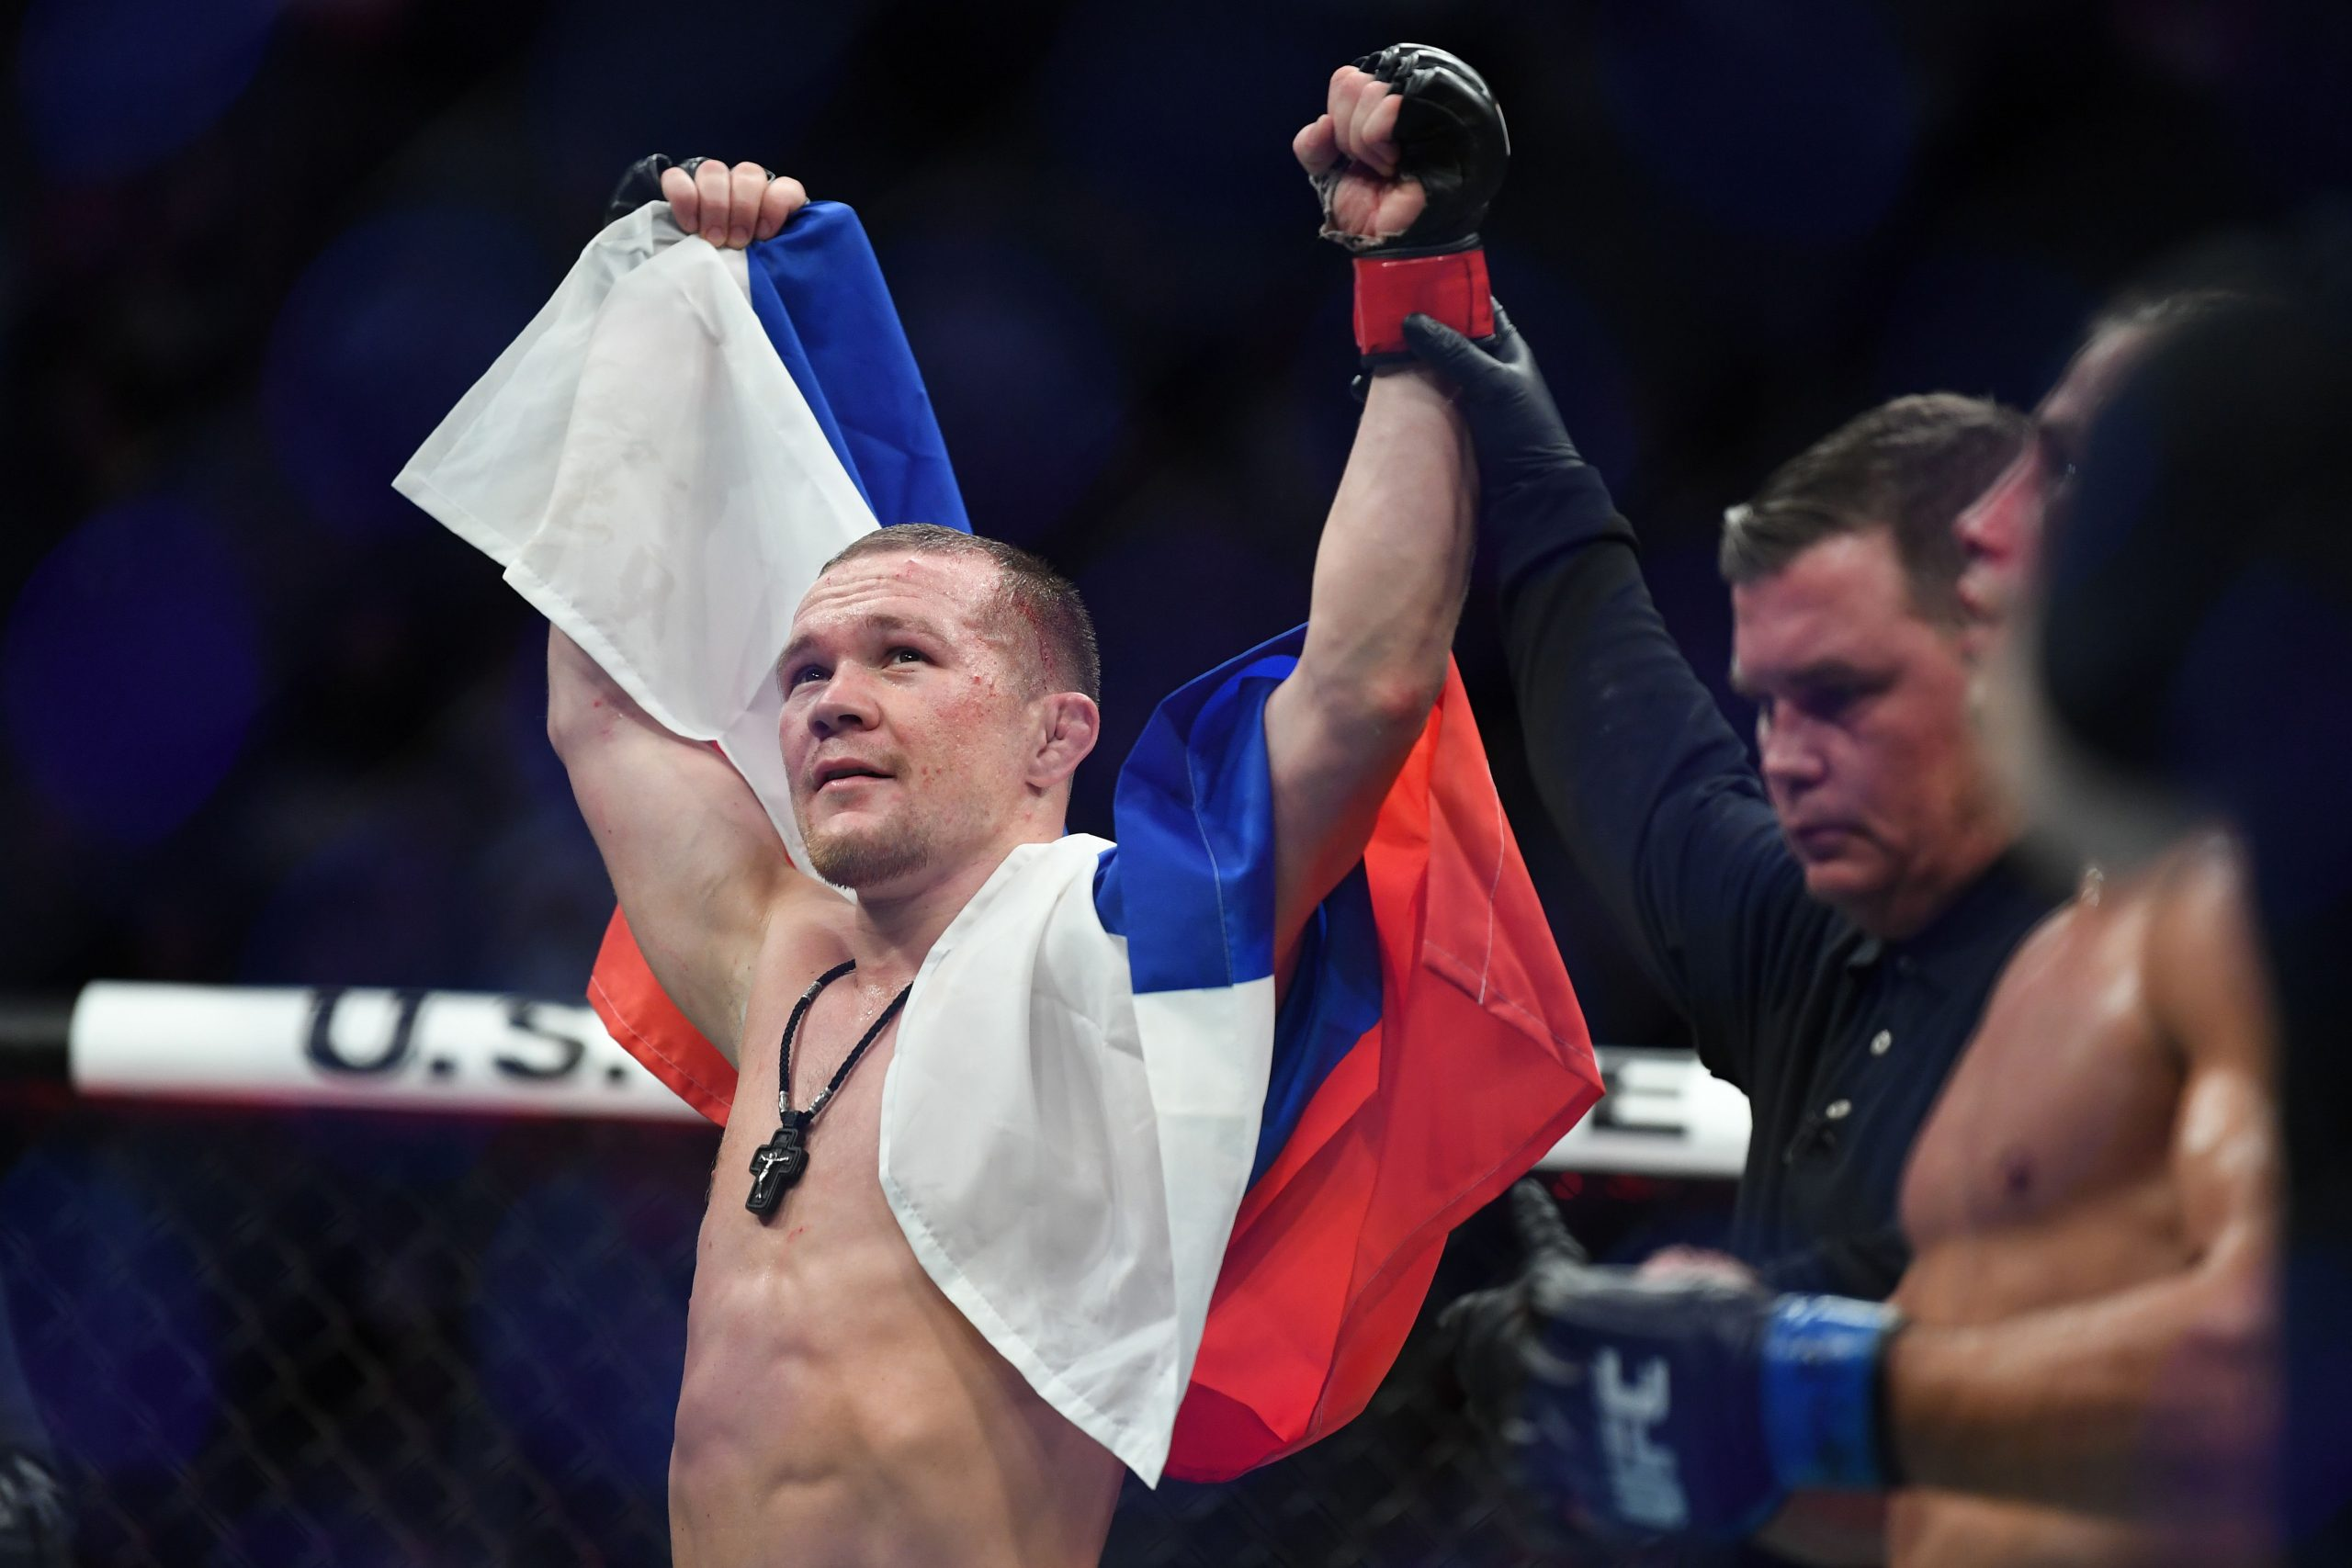 Dec 14, 2019; Las Vegas, NV, USA; Petr Yan (red gloves) reacts after defeating Urijah Faber (blue gloves) during UFC 245 at T-Mobile Arena.